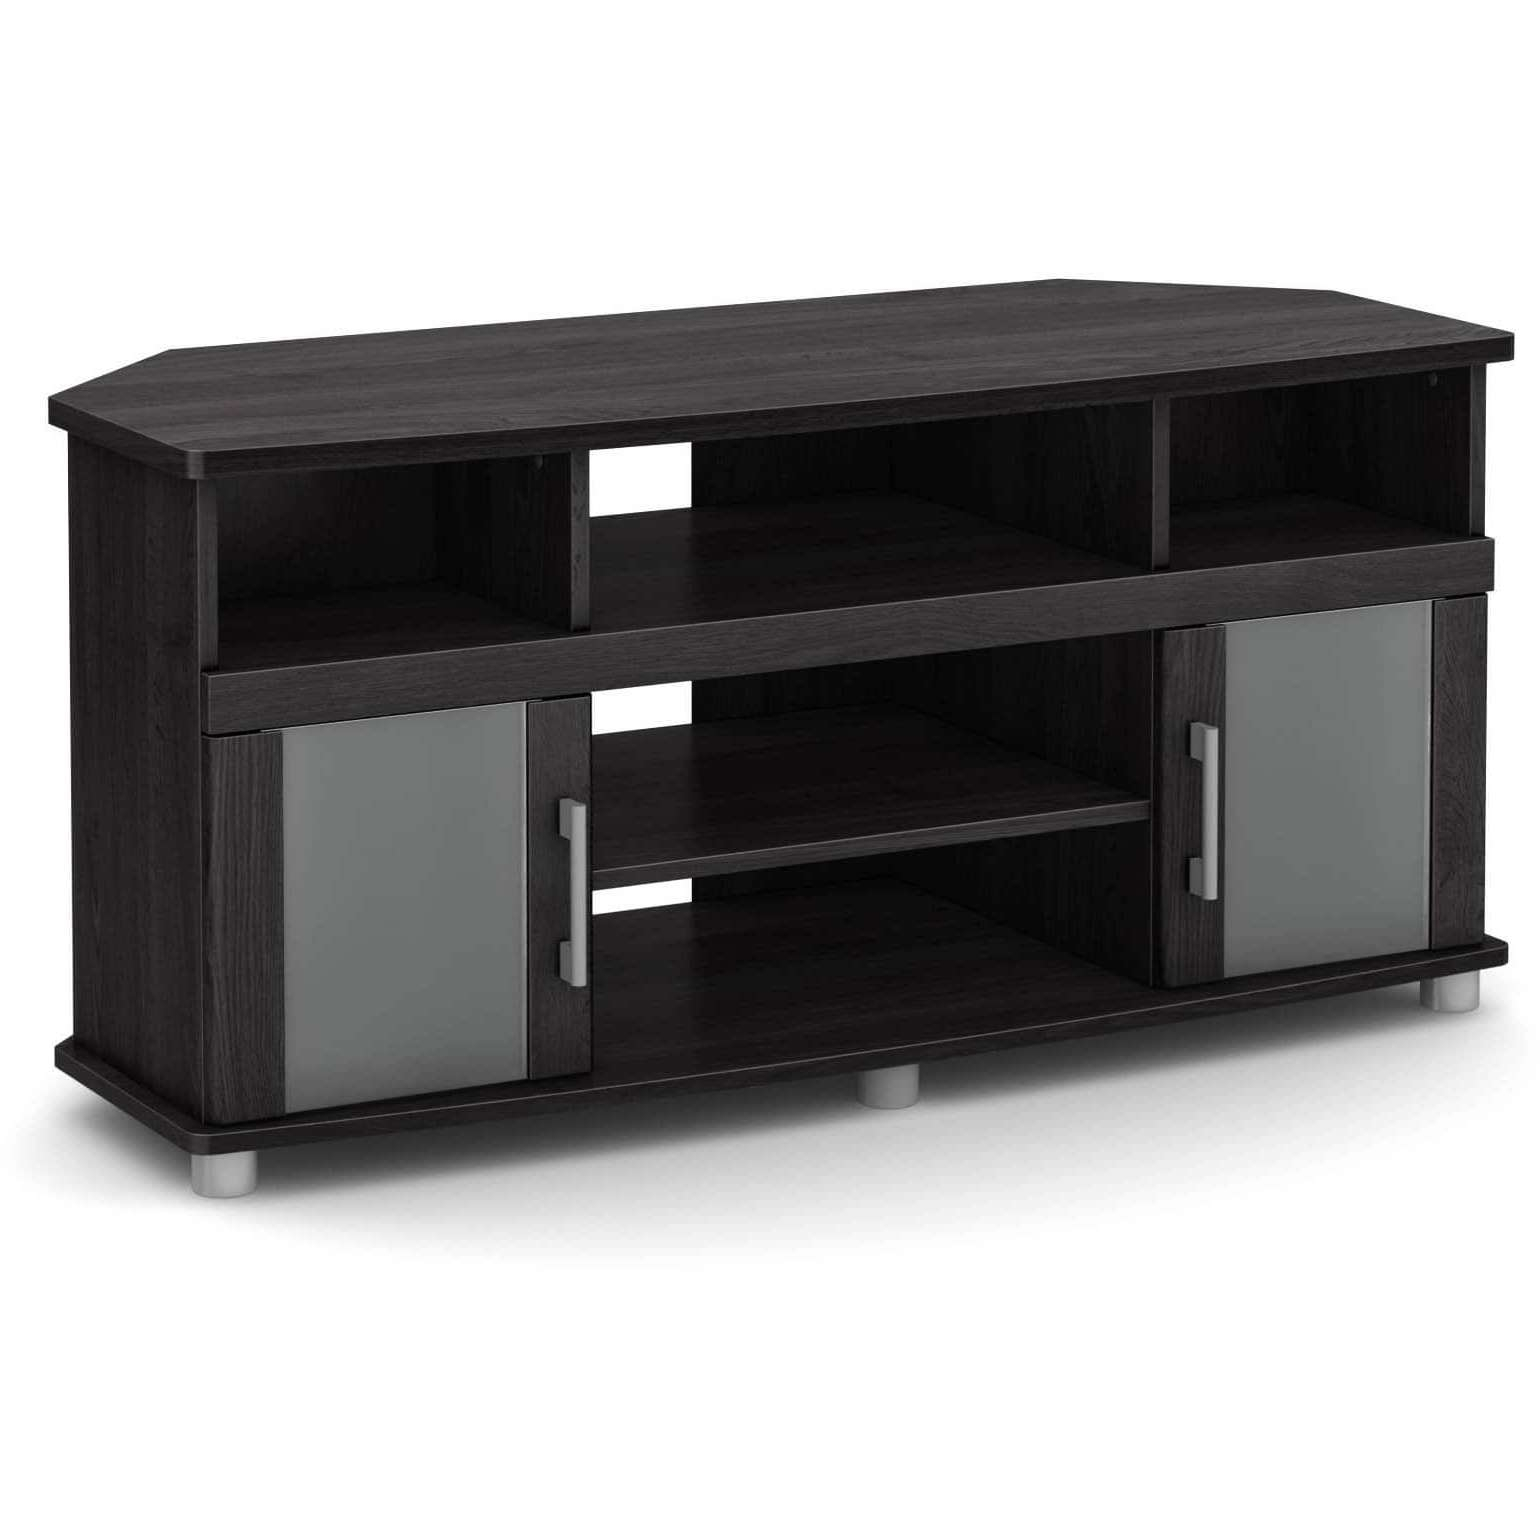 South Shore City Life Corner Tv Stand | Ebay Inside Grey Corner Tv Stands (View 11 of 20)